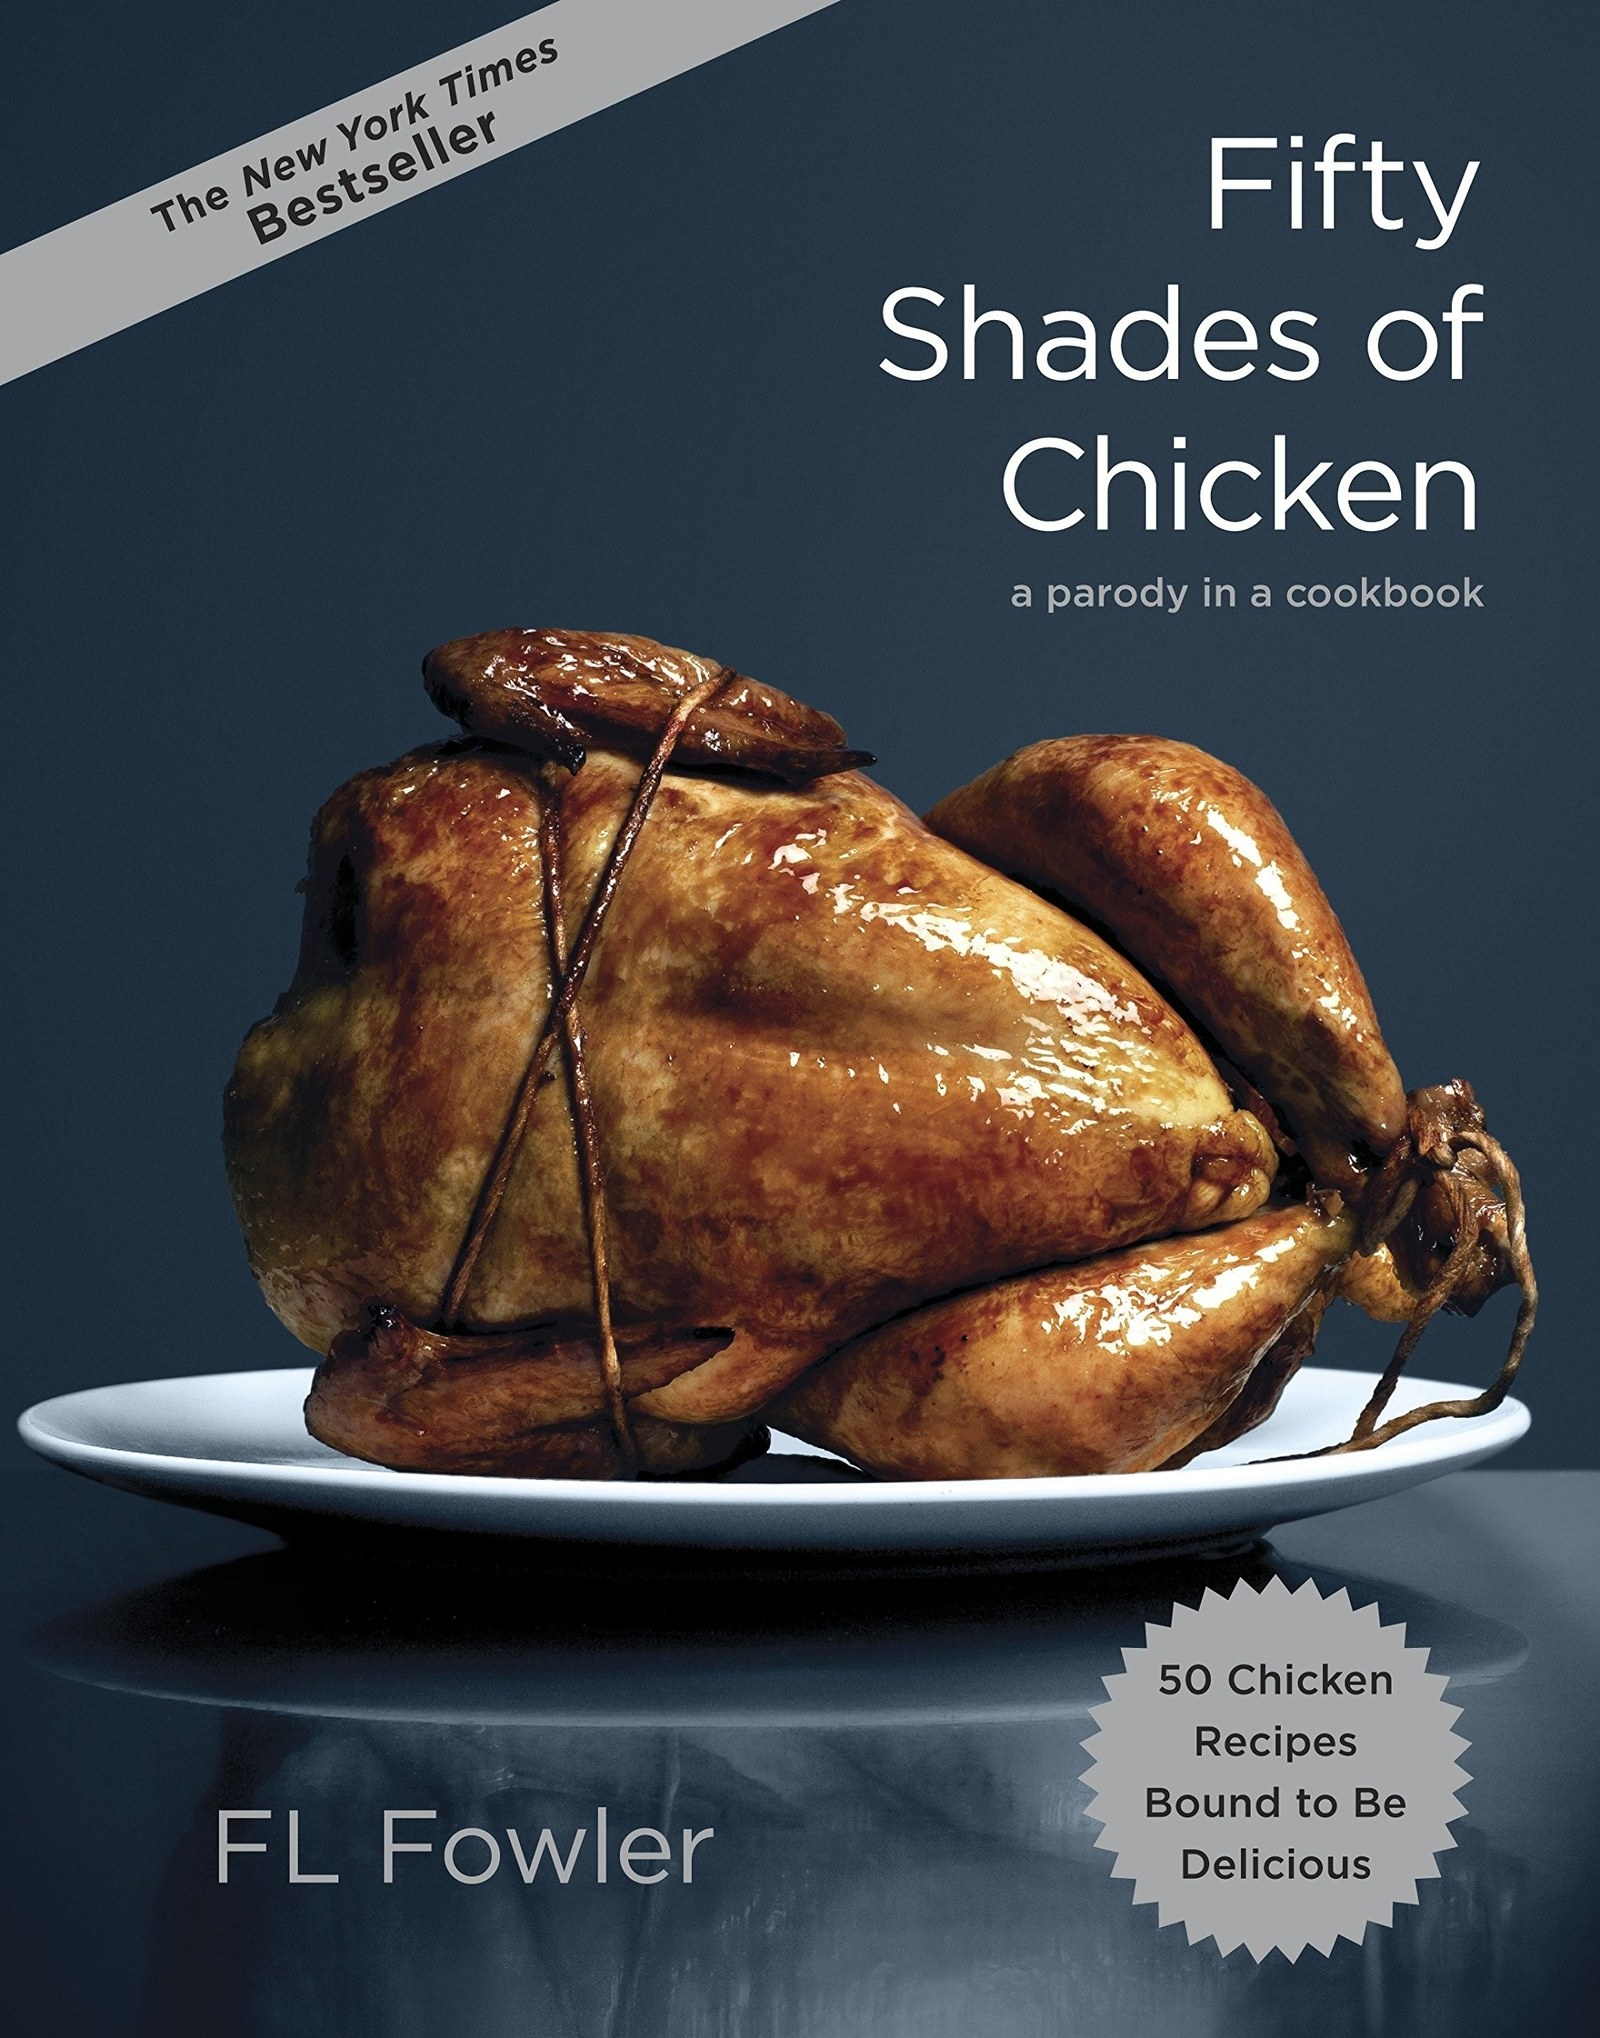 the book cover featuring a roast chicken tied up with string